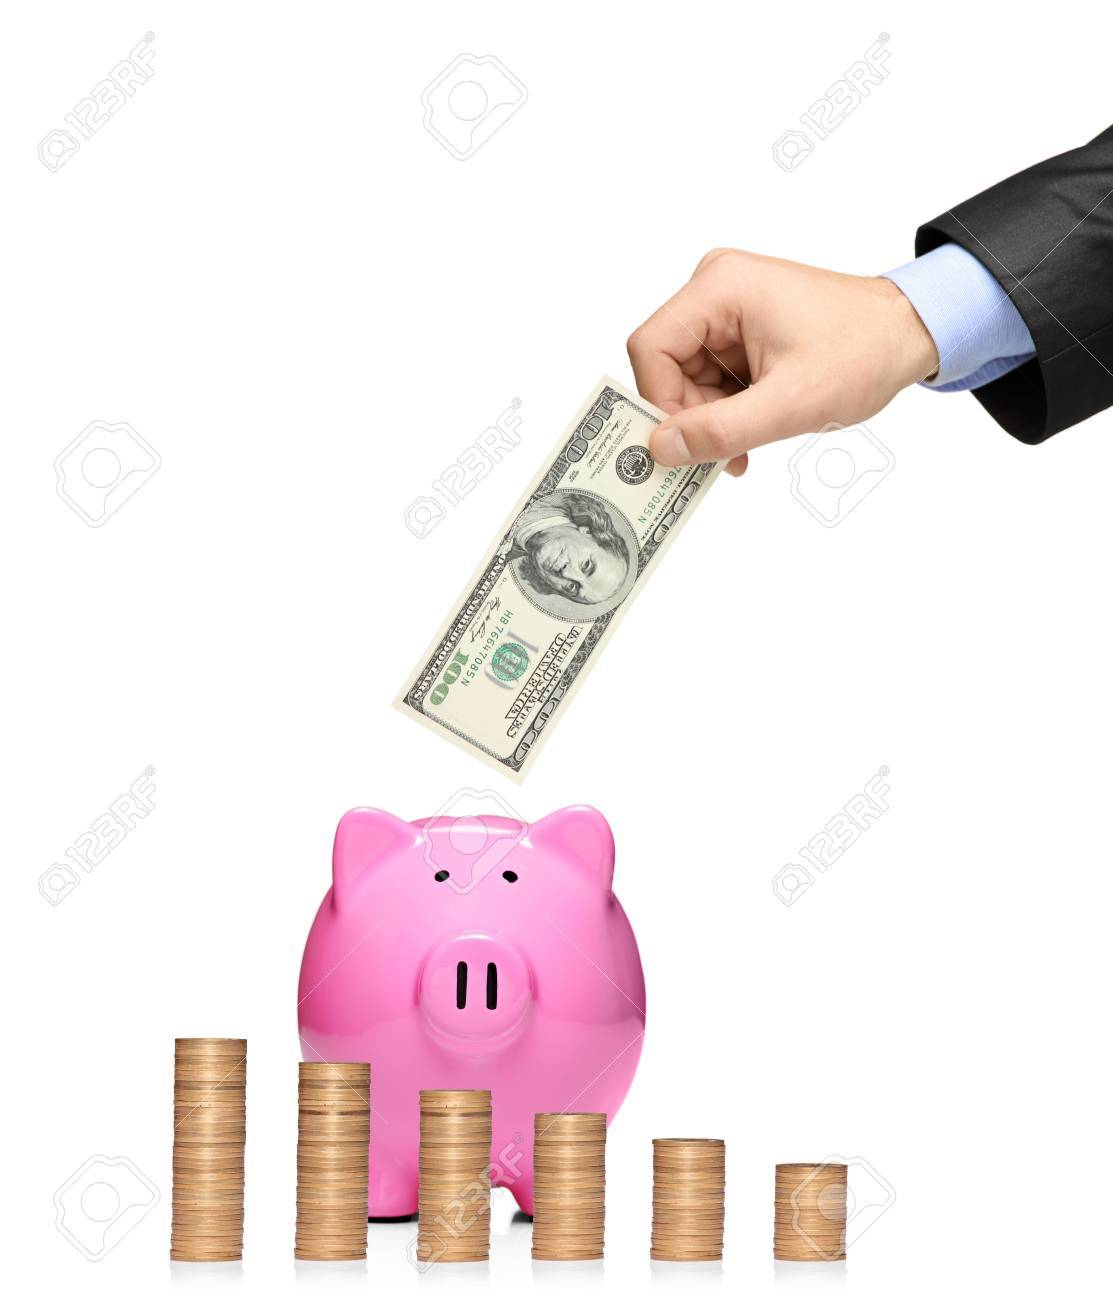 Man inserting a dollar into a piggy bank with stack of coins in front showing growth isolated against white background Stock Photo - 8189576